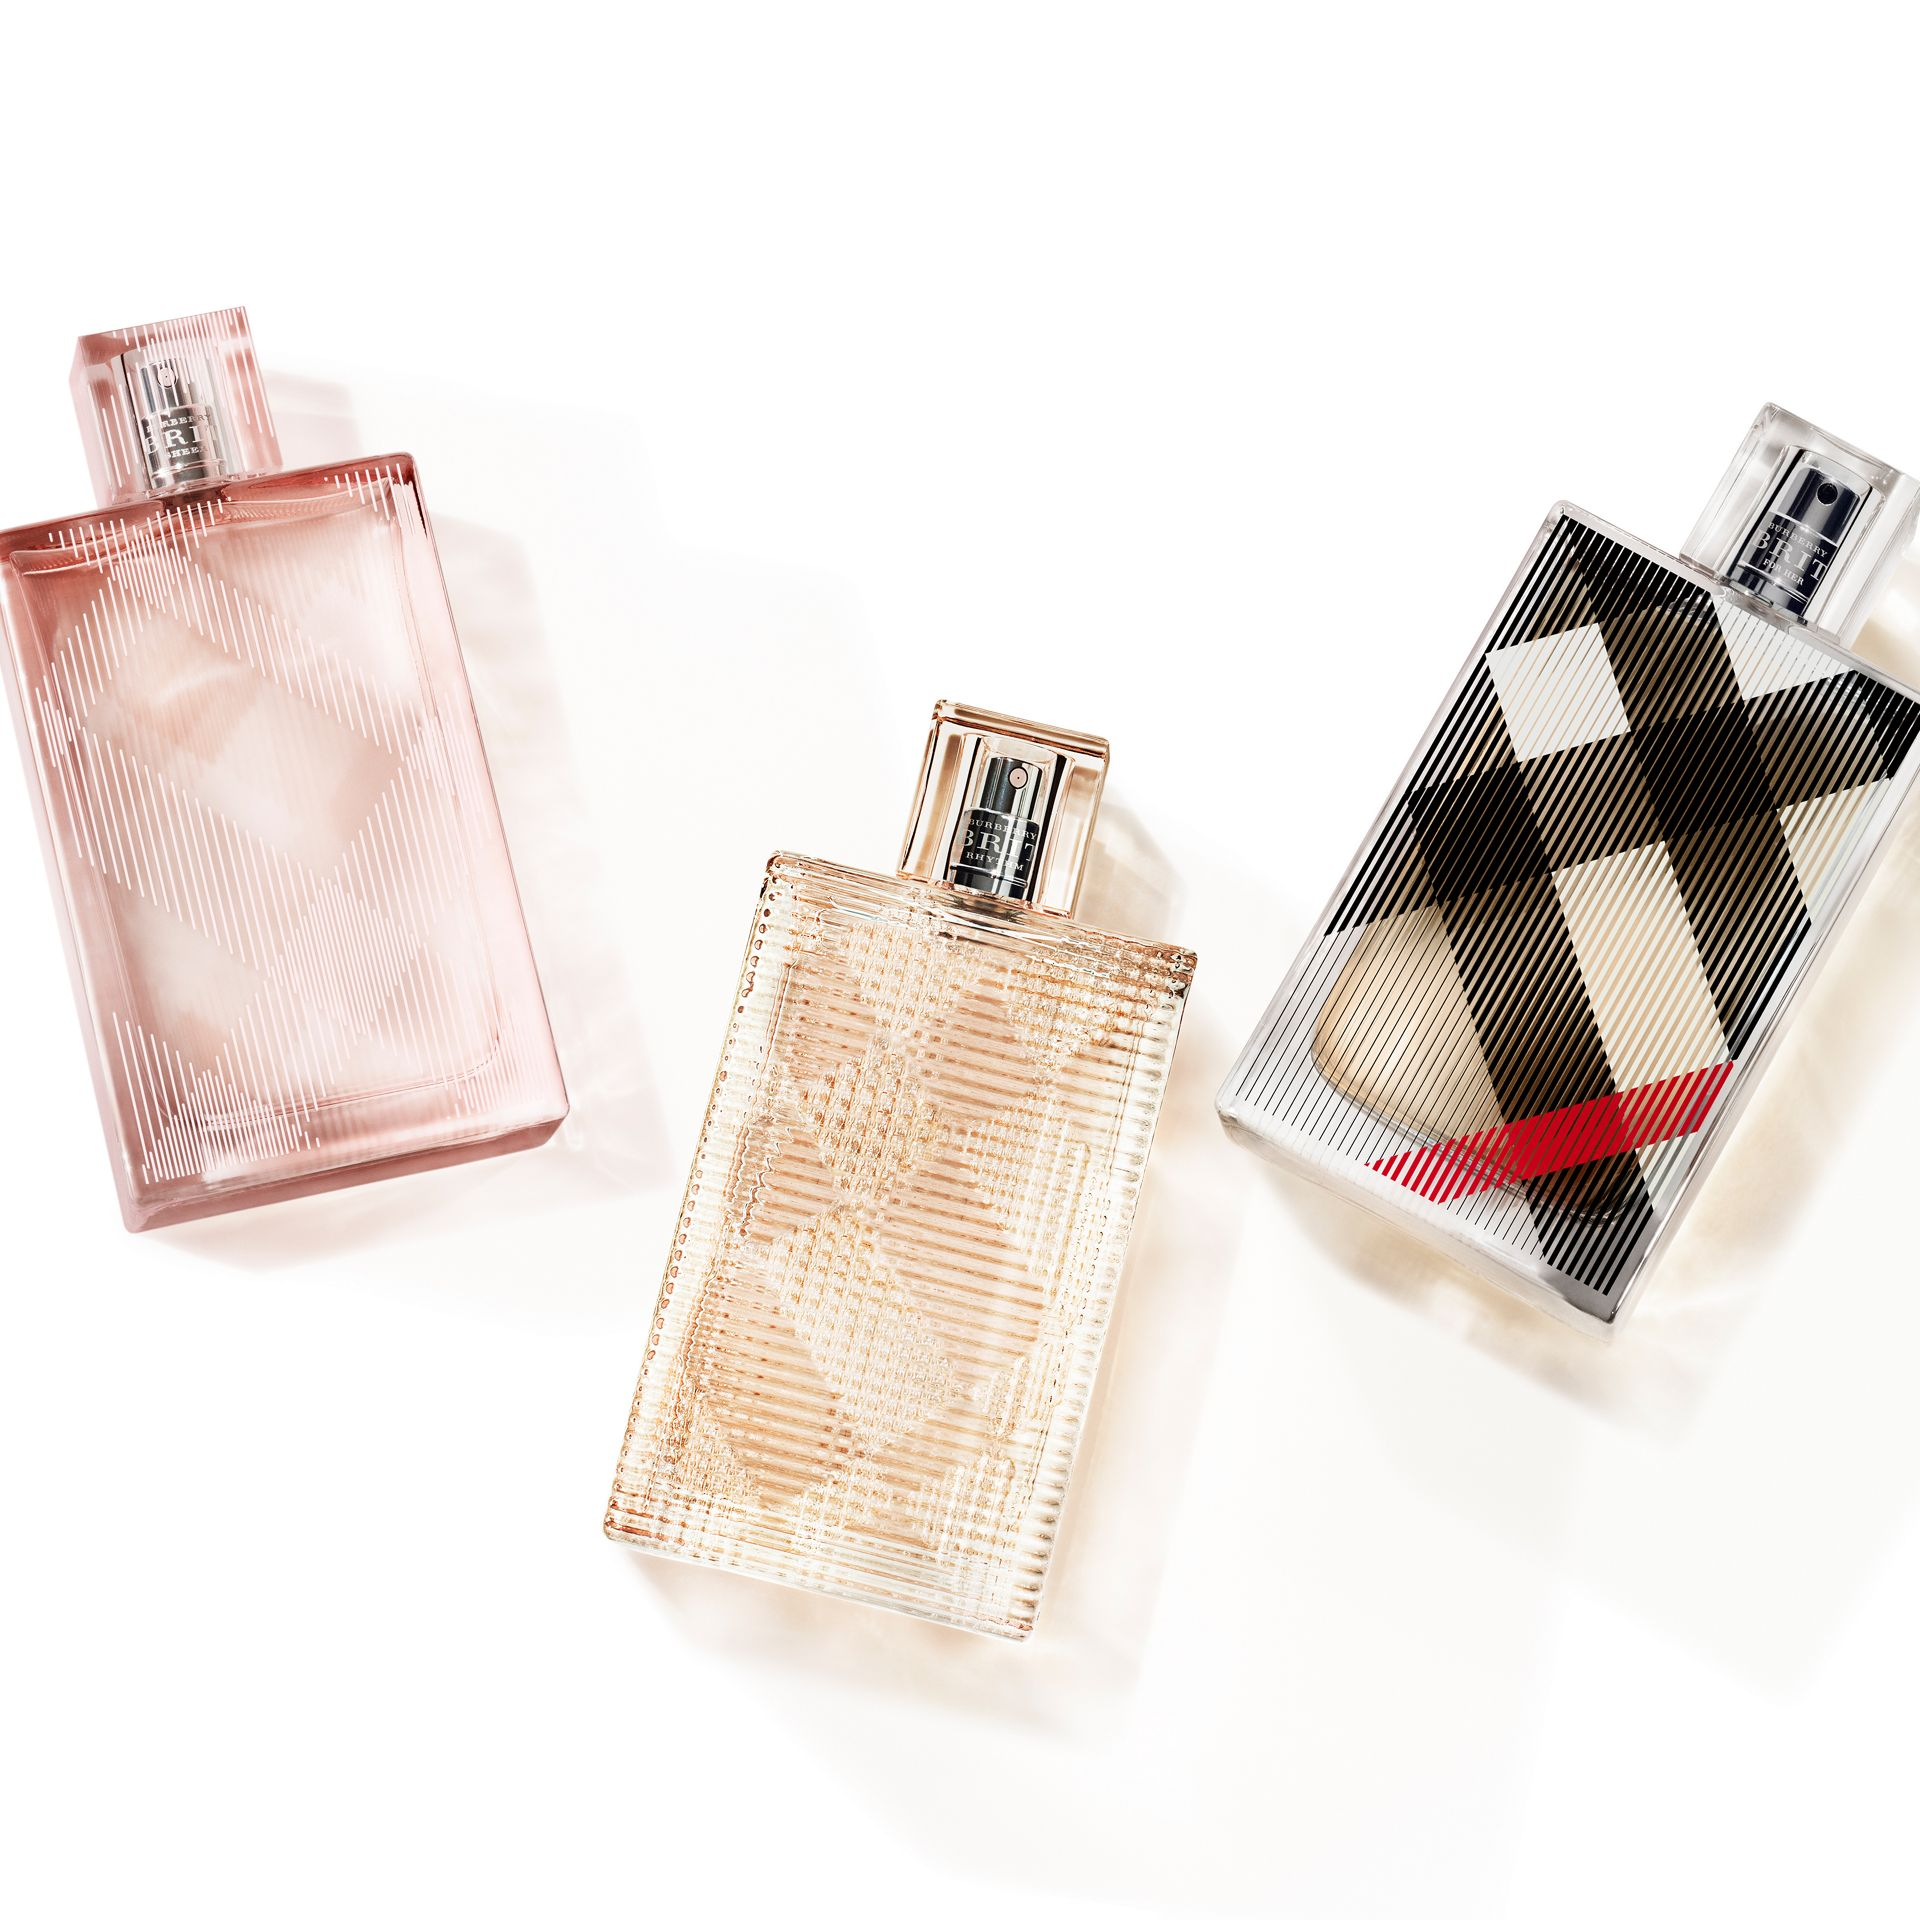 Burberry Brit for Her Eau de Parfum Set in Pink - Women | Burberry United Kingdom - gallery image 3